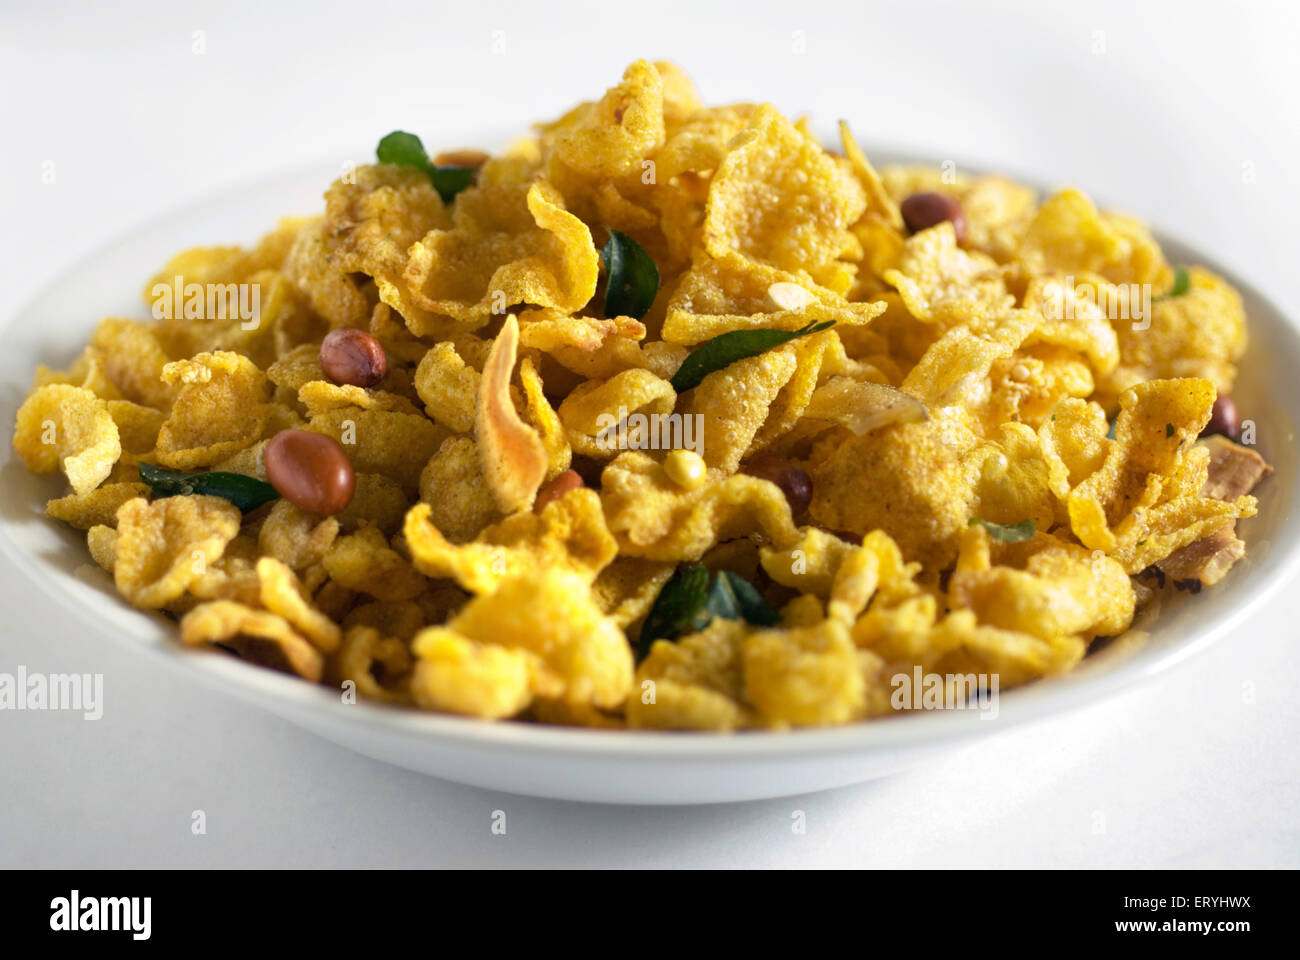 Snacks ; corn flakes fried yellow maka chivda served in dish on white background - Stock Image